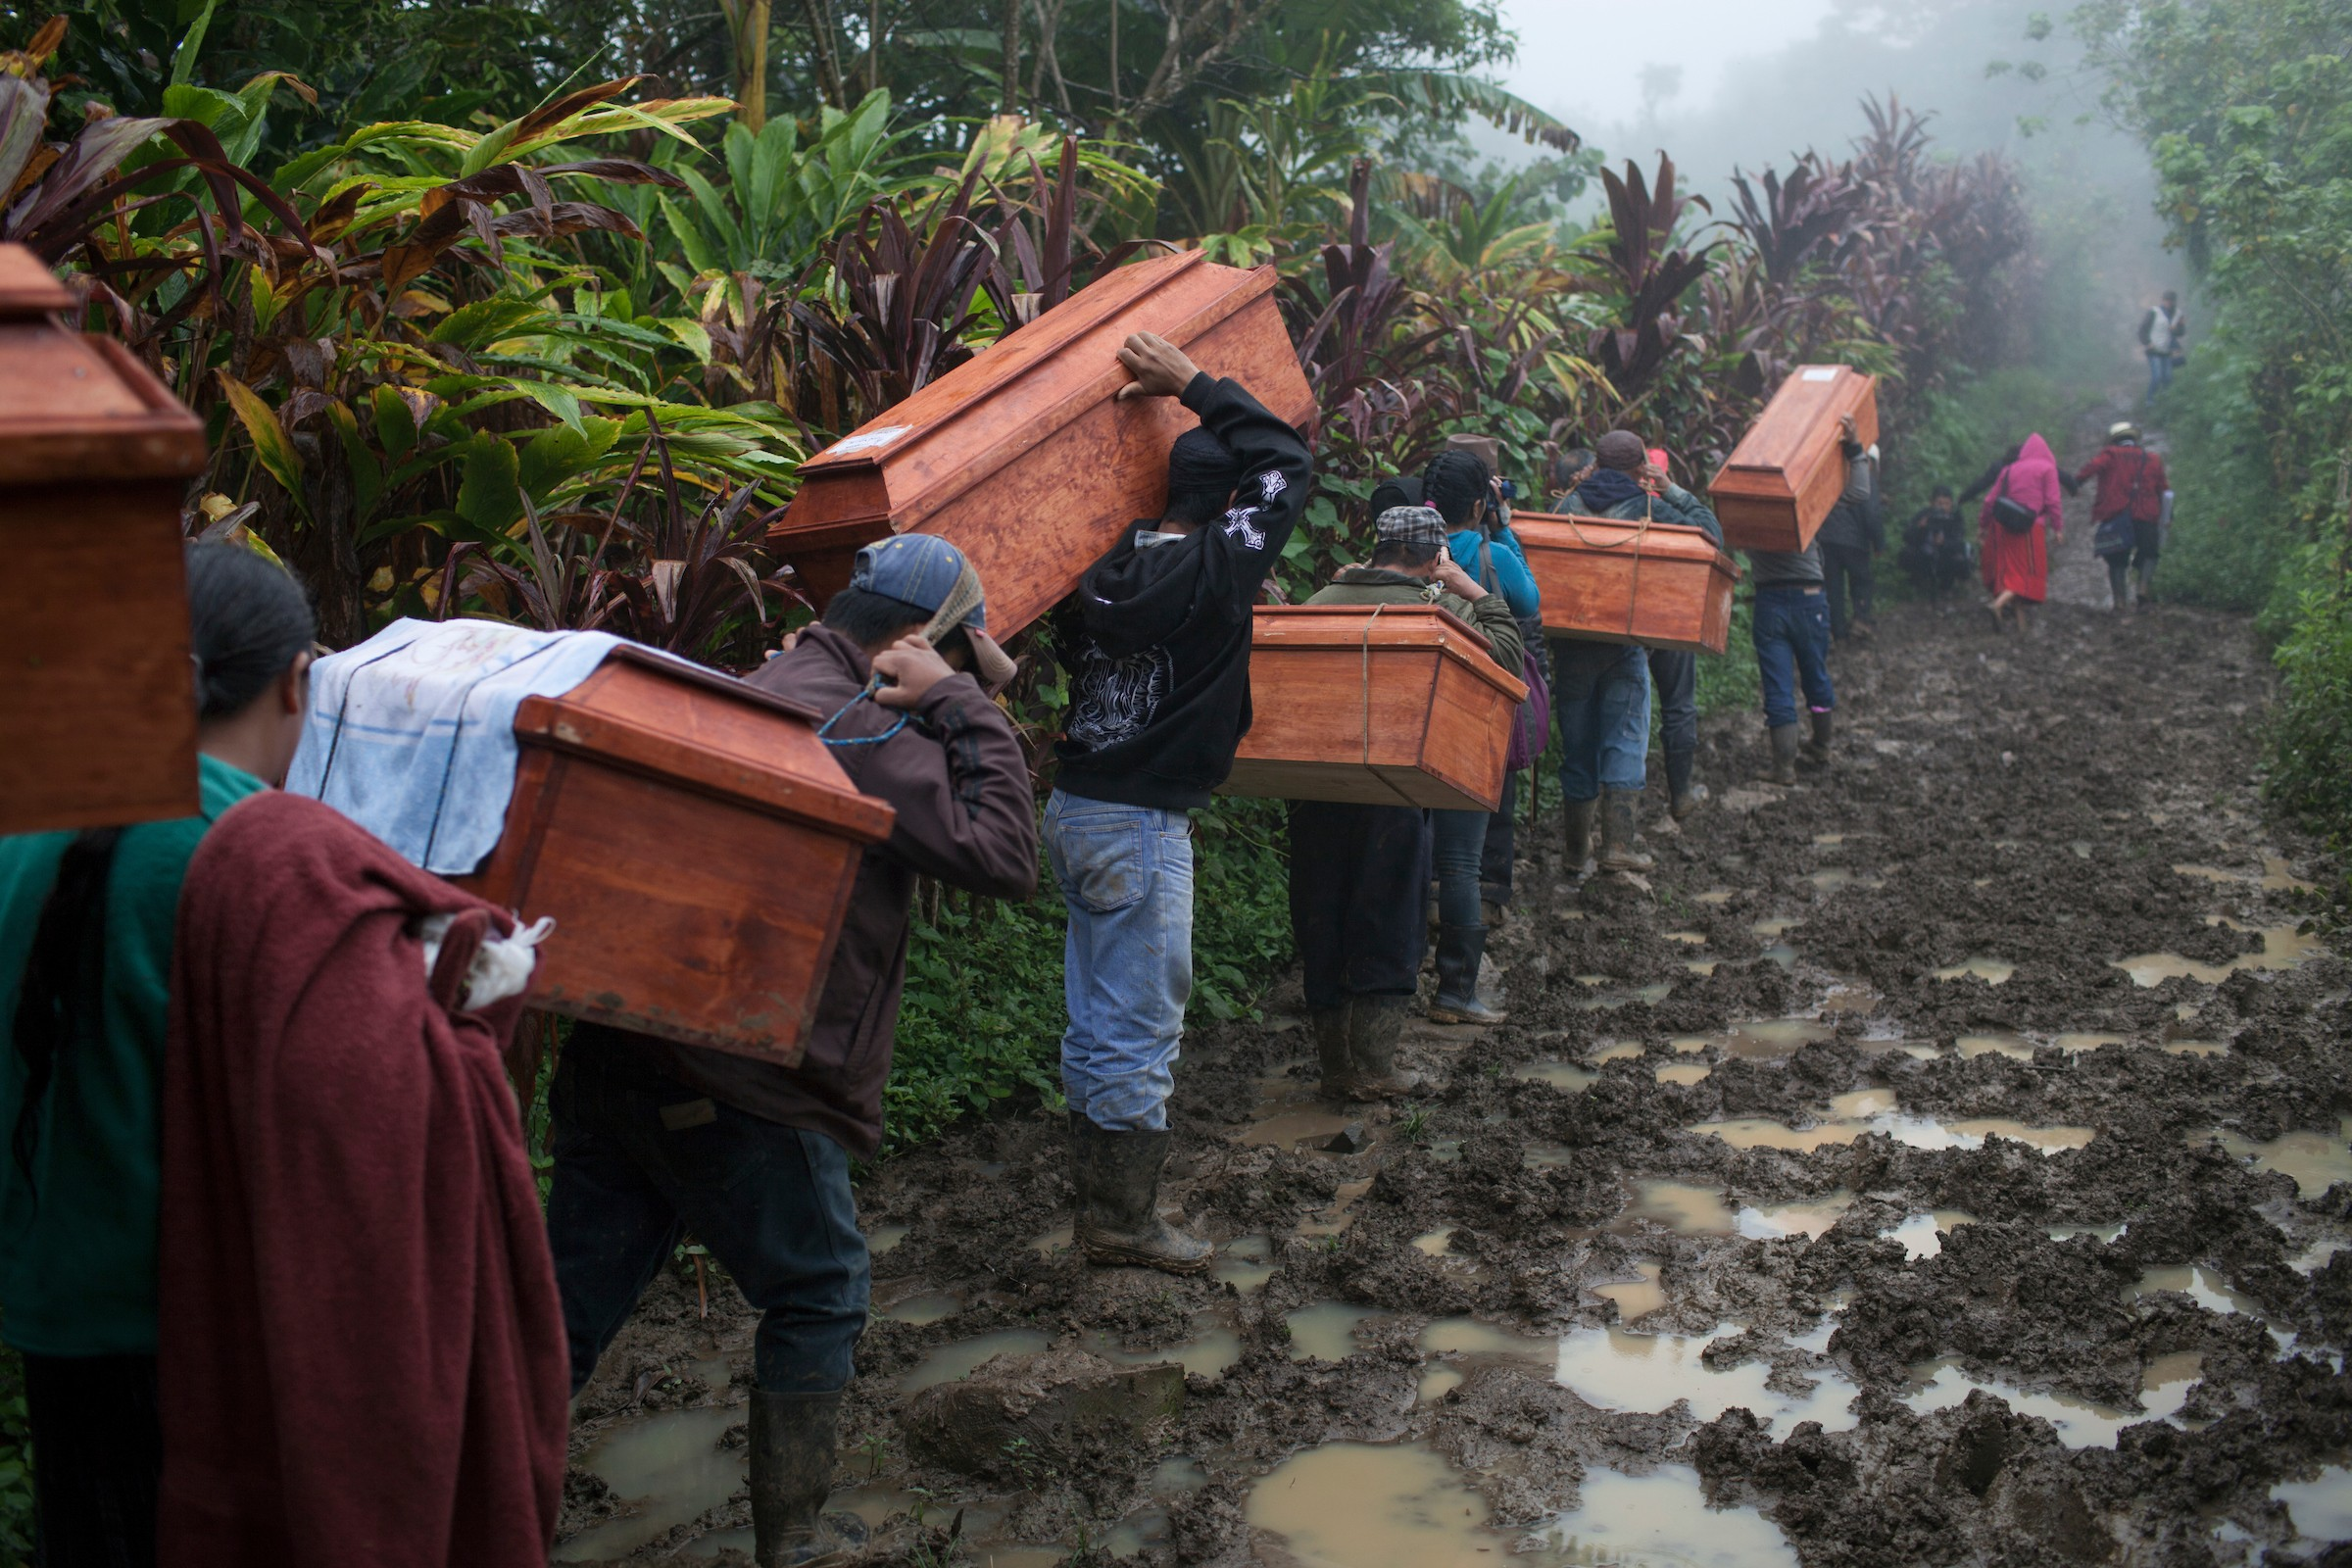 Community members from Estrella Polar and Covadonga hamlets head to the cemetery to bury the human remains of 77 war victims exhumed from mass graves in 2009. The victims were killed during the Covadonga massacre by the Guatemalan military forces on March 29, 1982, during the de facto government of General Efrain Rios Montt as part of a scorched earth campaign against numerous Mayan villages believed to support the guerrilla forces. Estrella Polar, Chajul, Quiché, Guatemala. November 20, 2014. - JAMES RODRIGUEZ / MIMUNDO.ORG